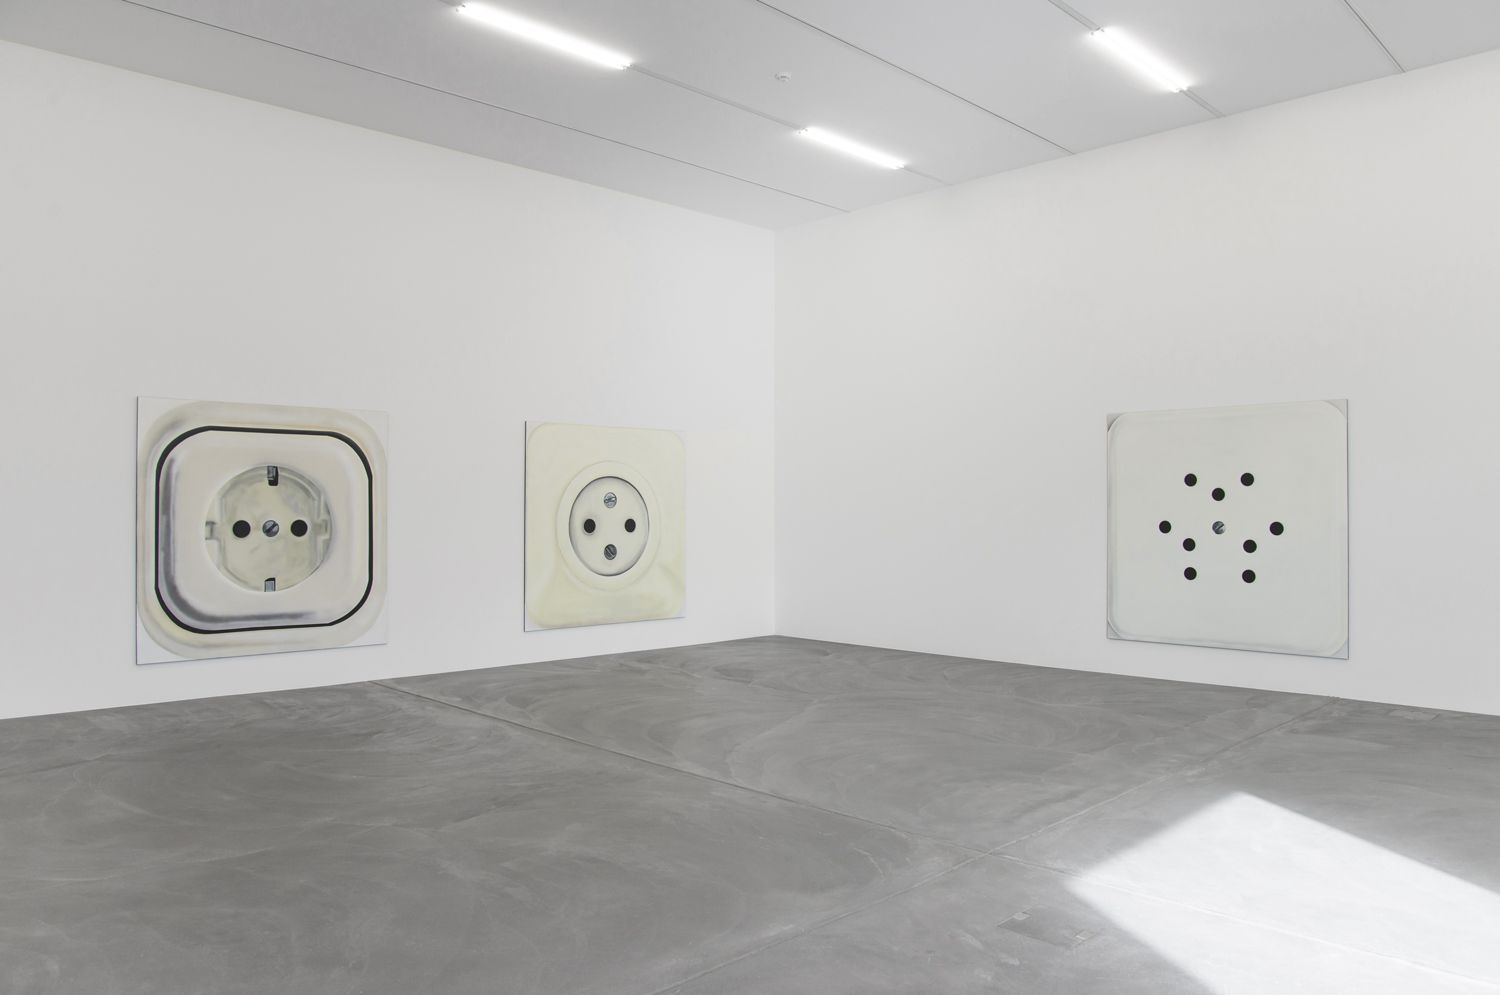 Jana Euler S Exhibition Where The Energy Comes From At Kunsthalle Zurich